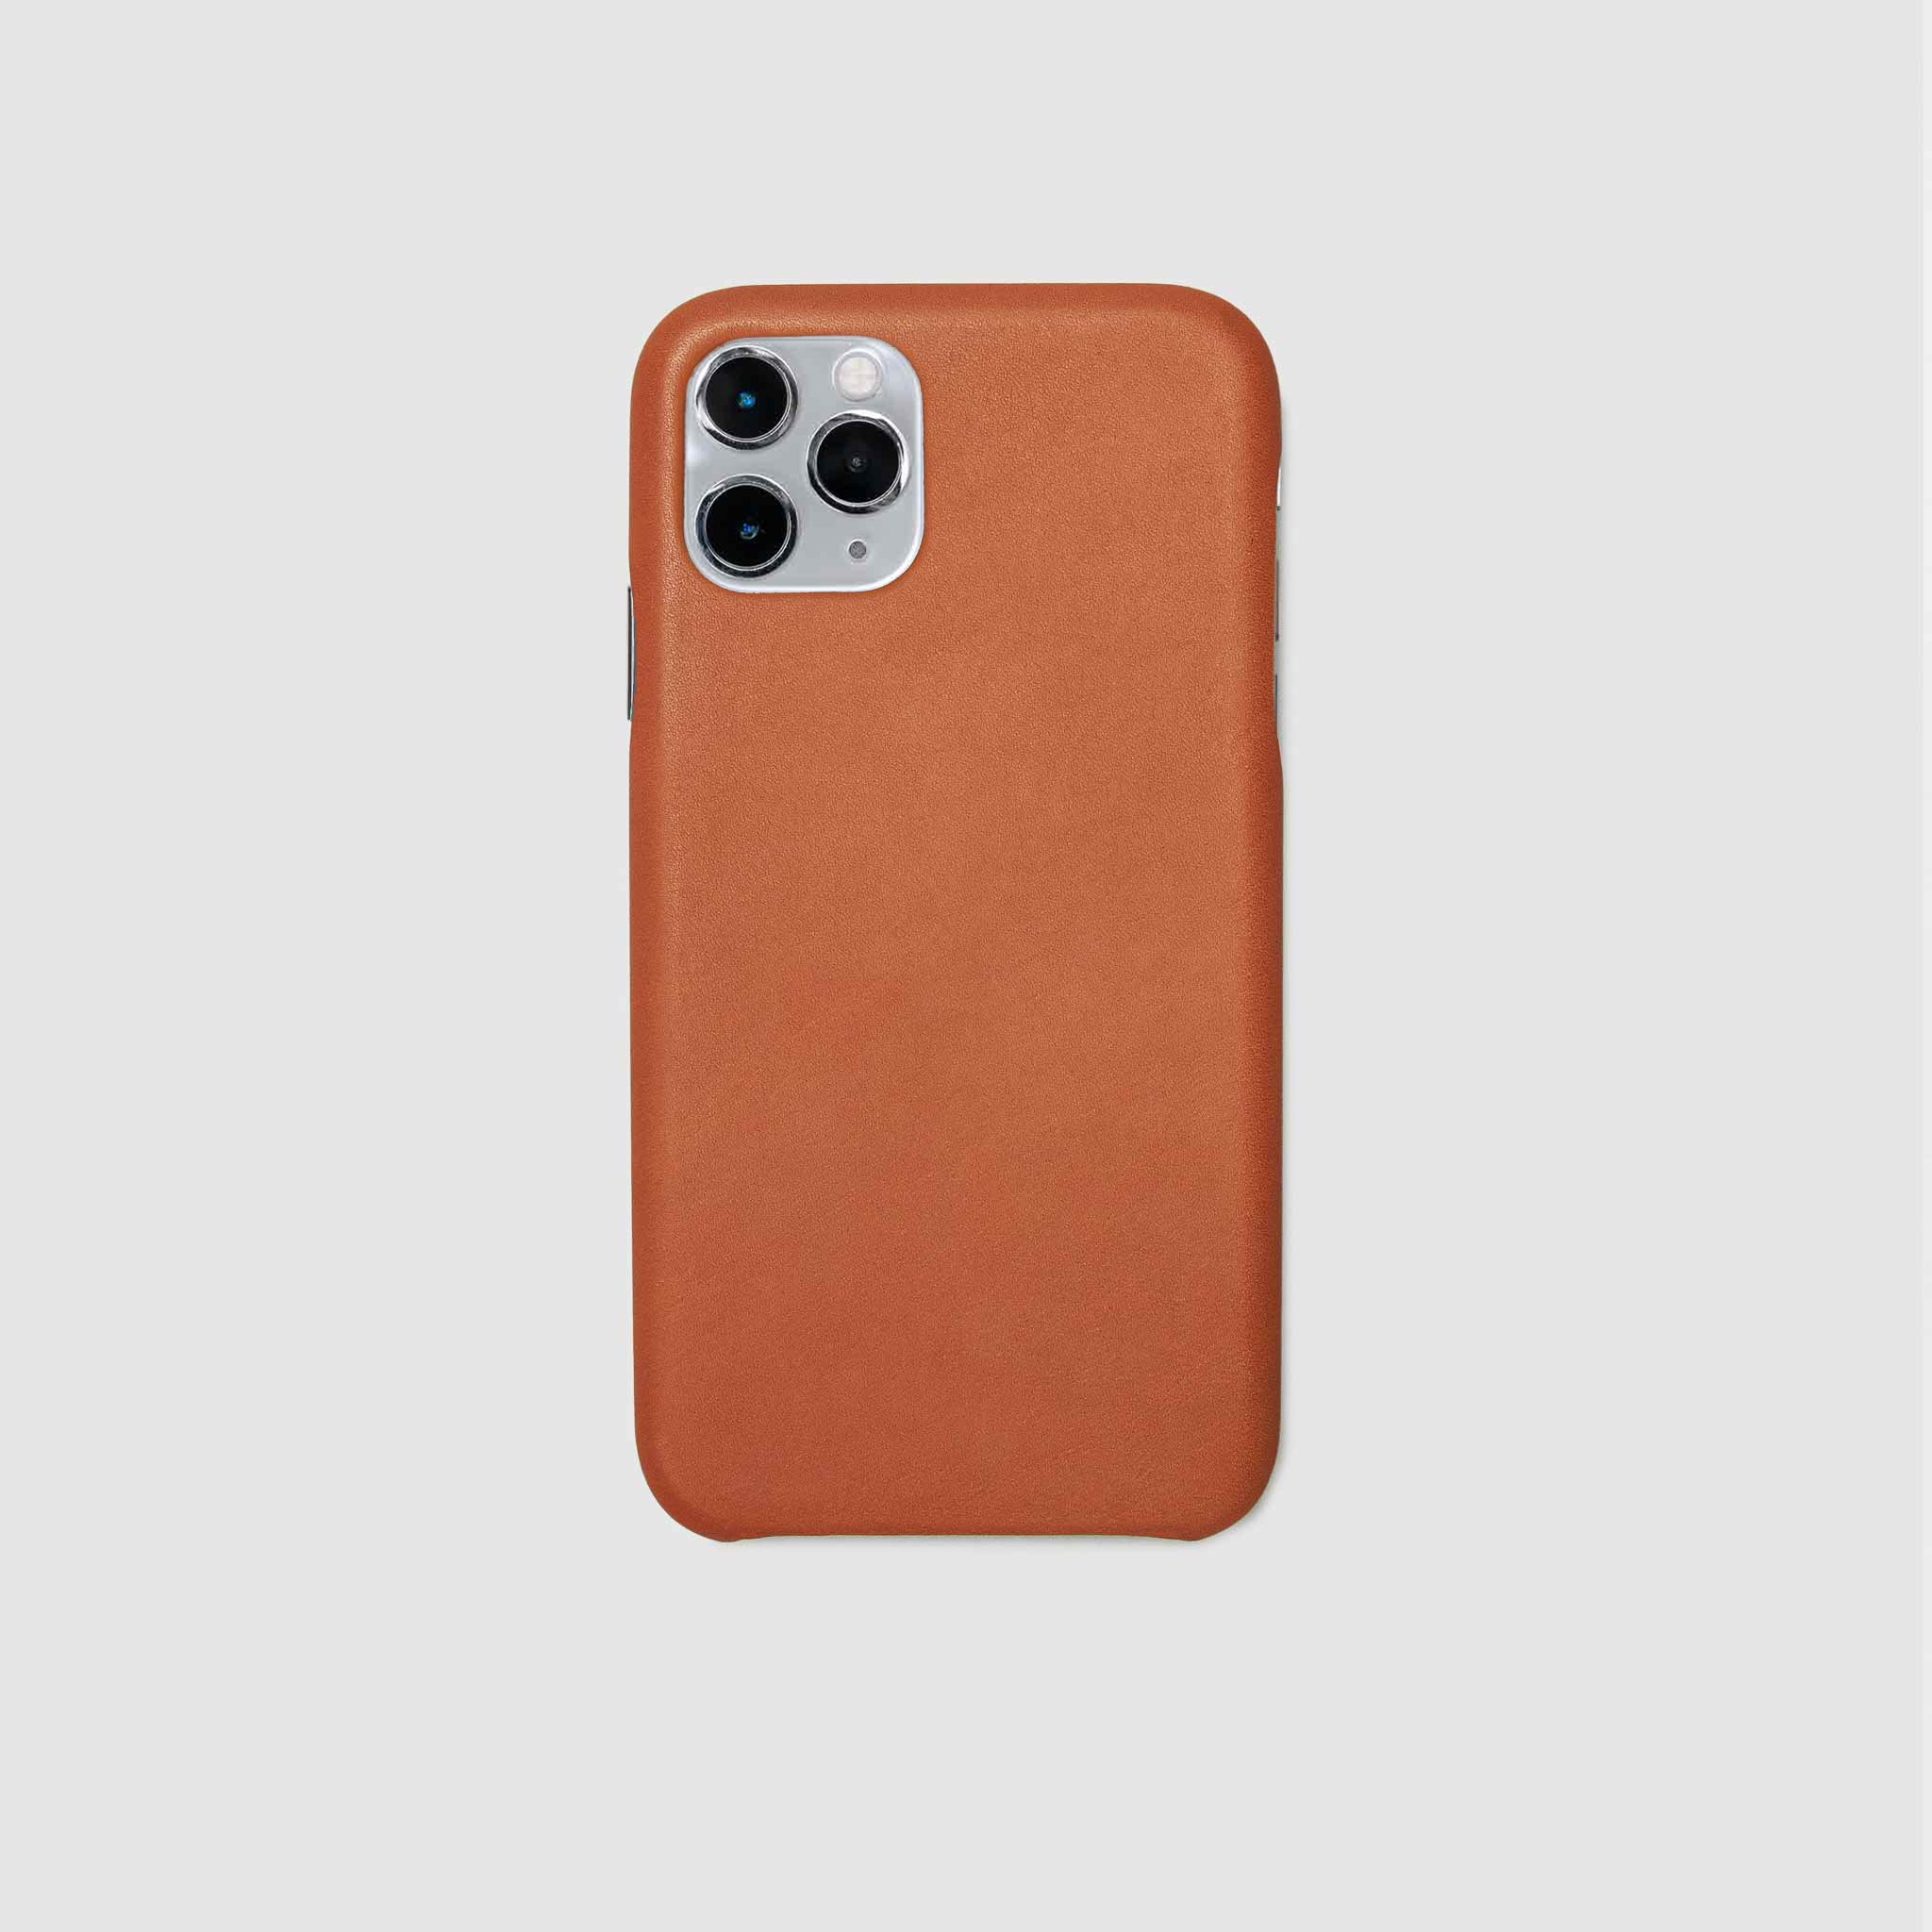 anson calder iphone case french calfskin 11 eleven pro max leather !iphone11pro-iphone11promax *hover _cognac